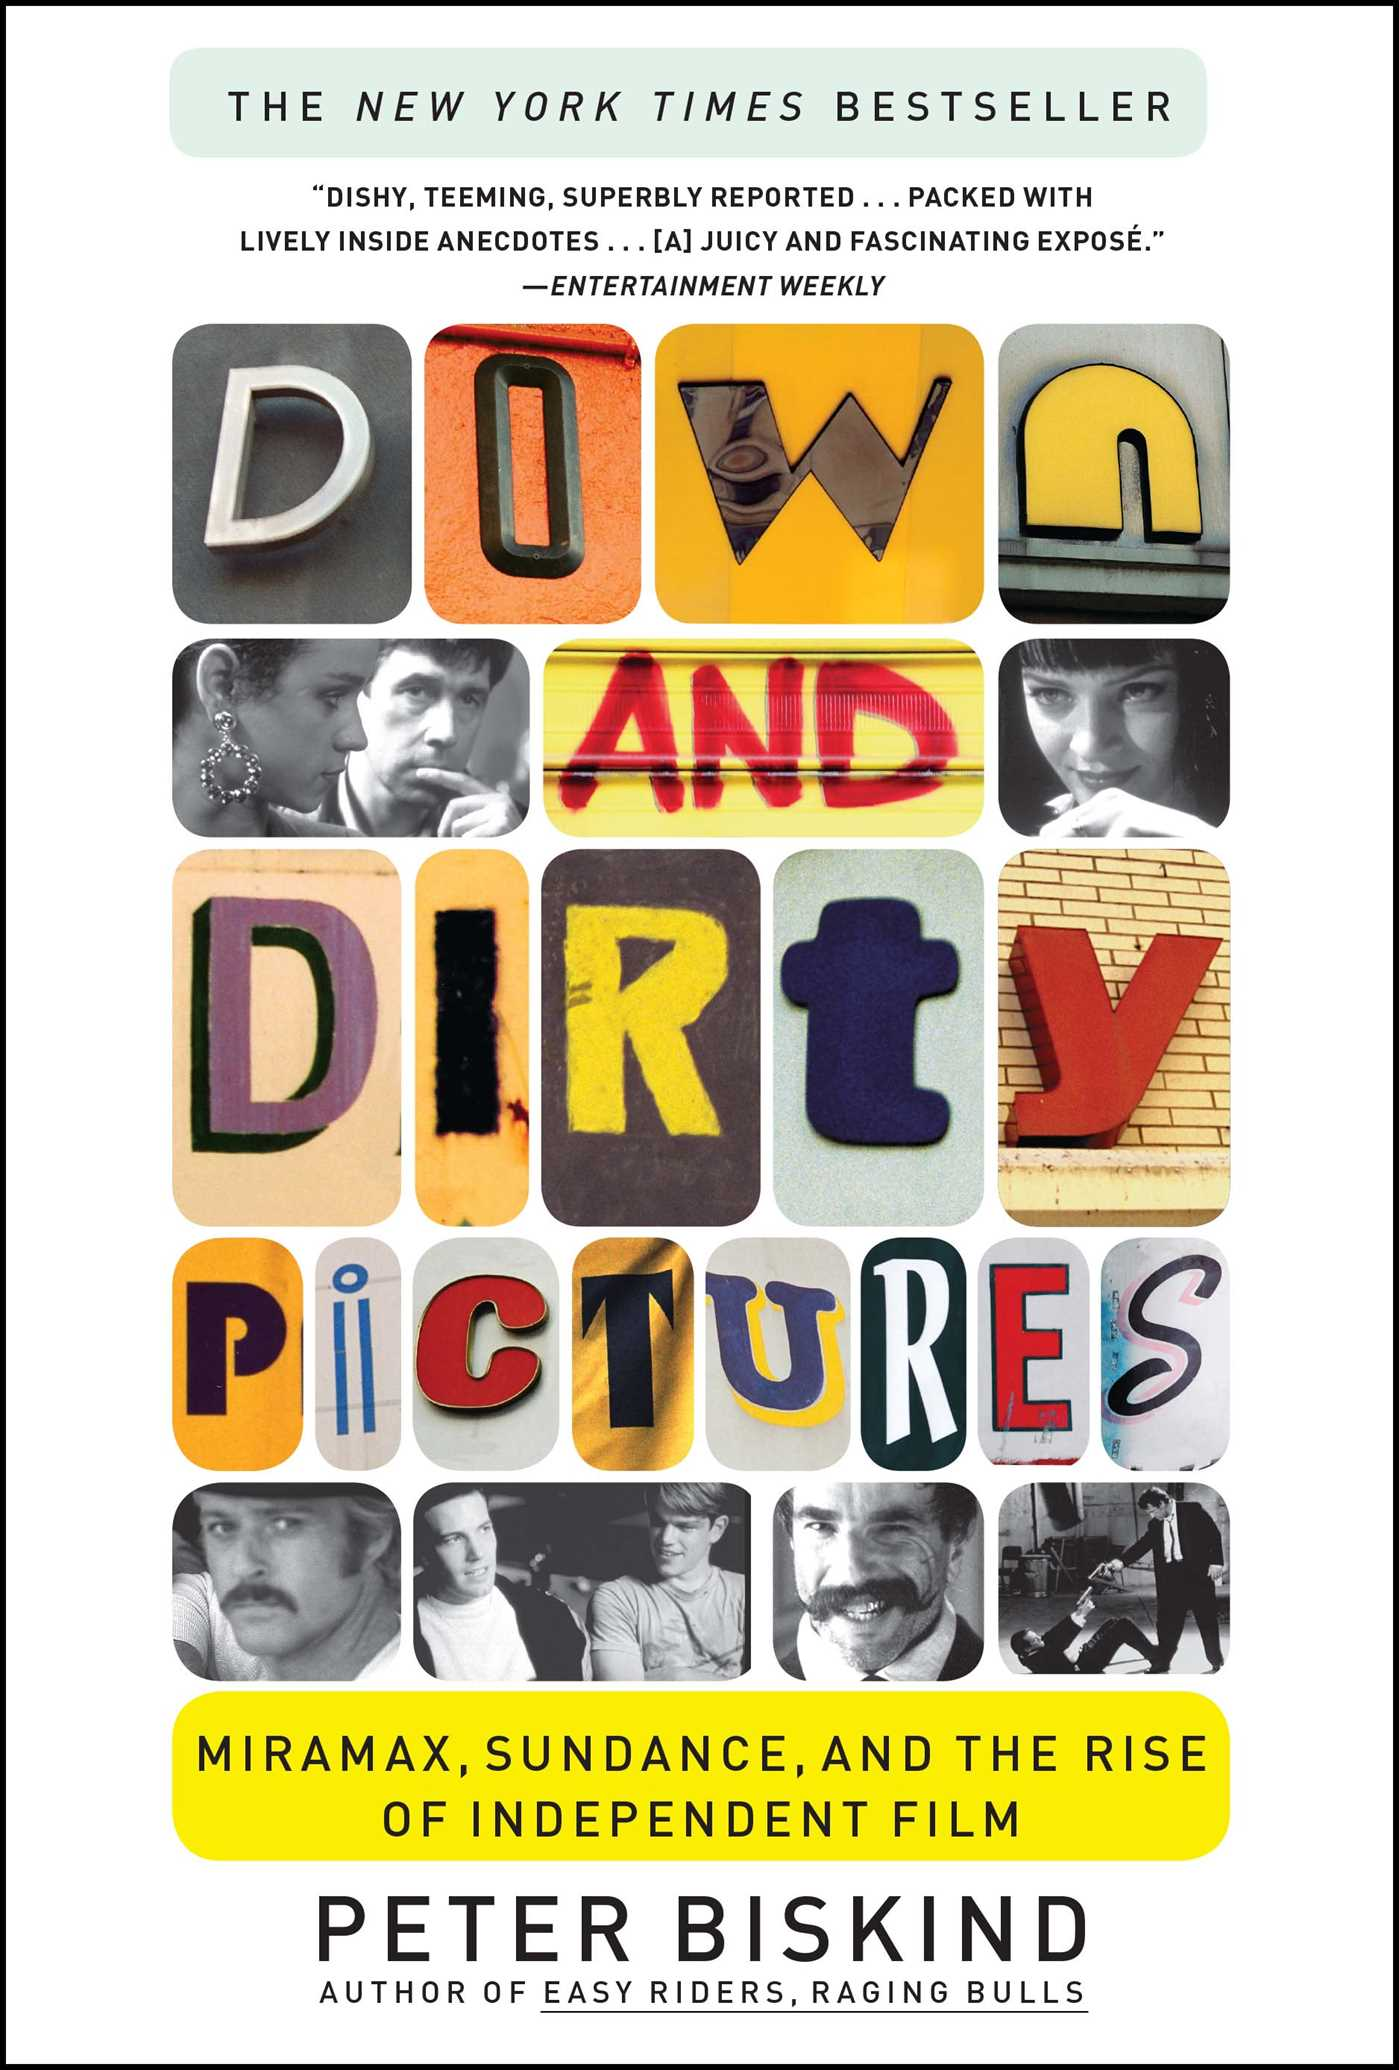 Down and dirty pictures ebook by peter biskind official down and dirty pictures ebook by peter biskind official publisher page simon schuster fandeluxe Gallery